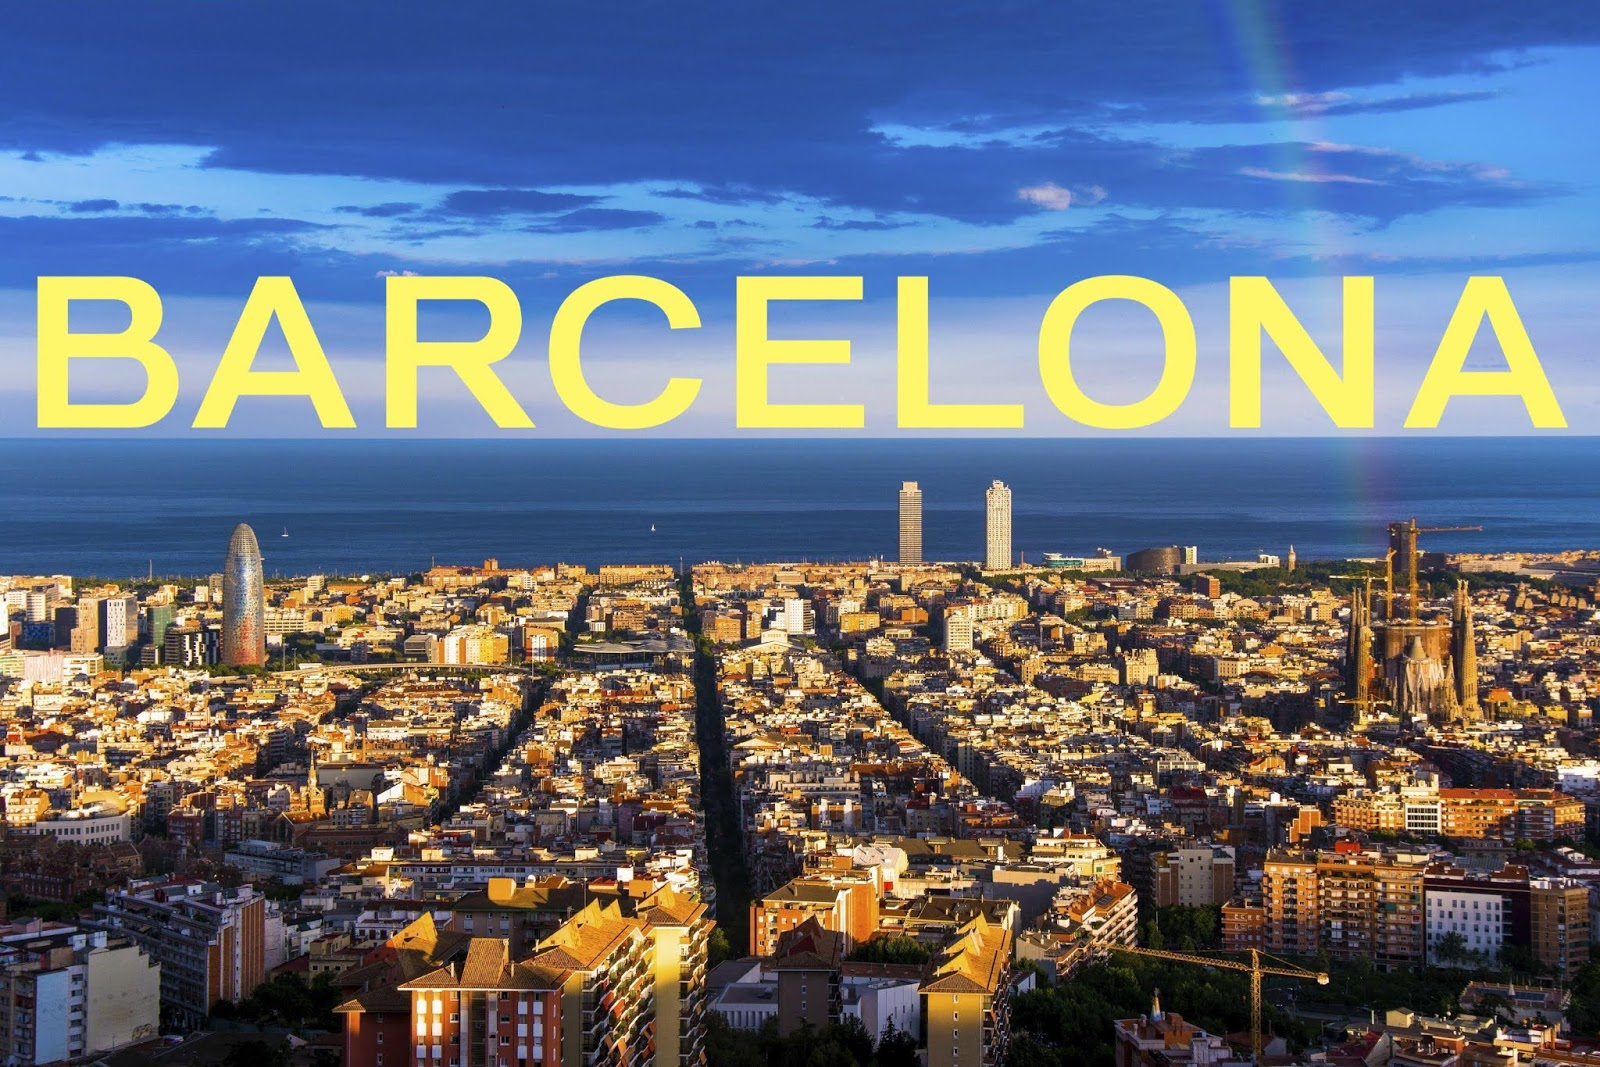 Los Angeles (LAX) - Barcelona, Spain (BCN) // $377 USD Round-Trip, Direct Flight! This Is Your Chance To Visit Barcelona 🌆🇪🇸